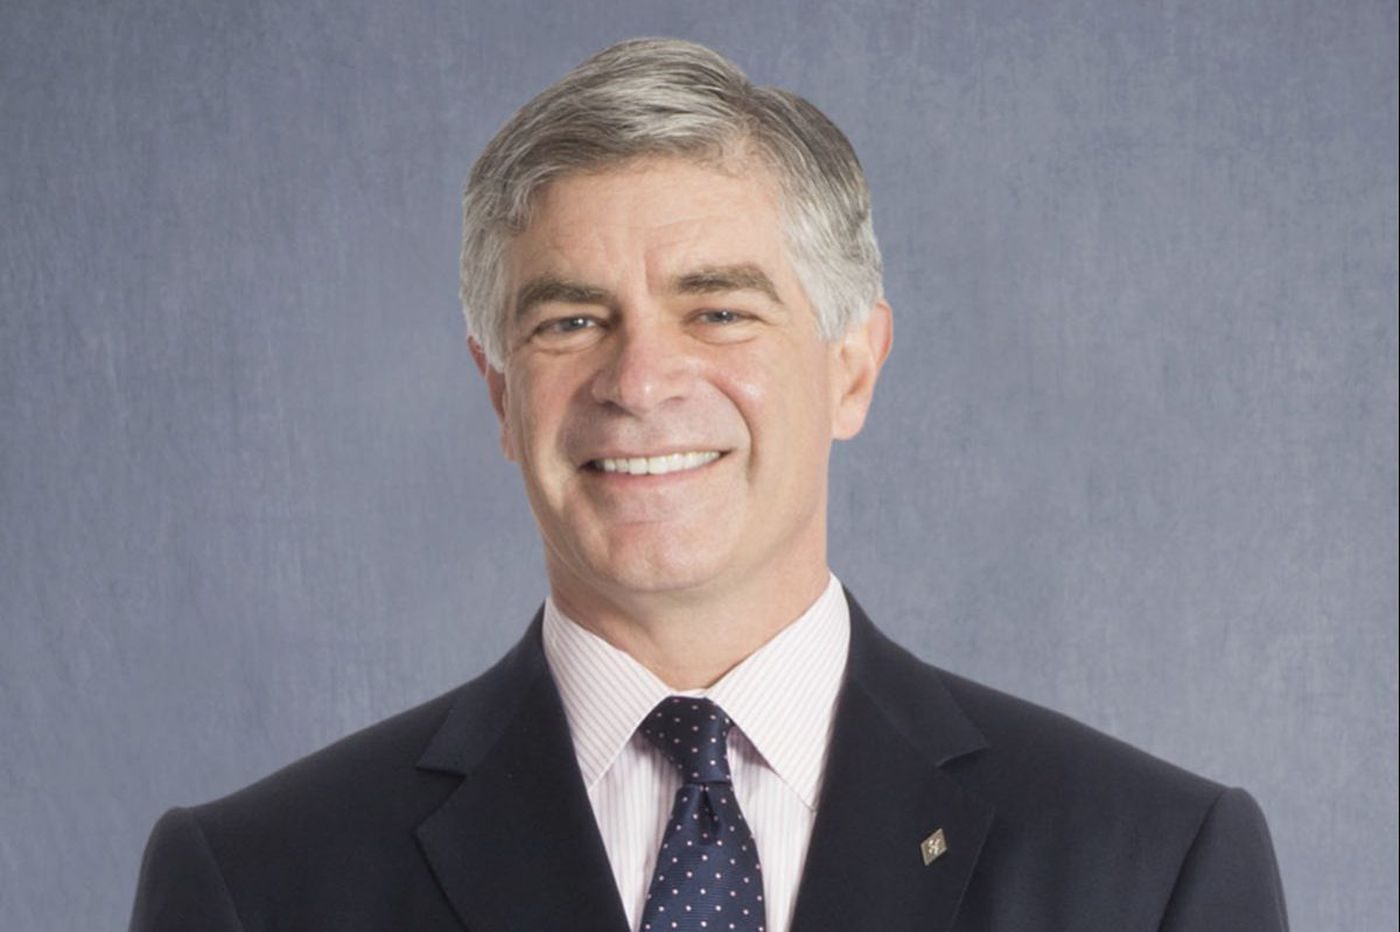 Pat Harker to keynote Inquirer's Influencers of Finance event Feb. 28